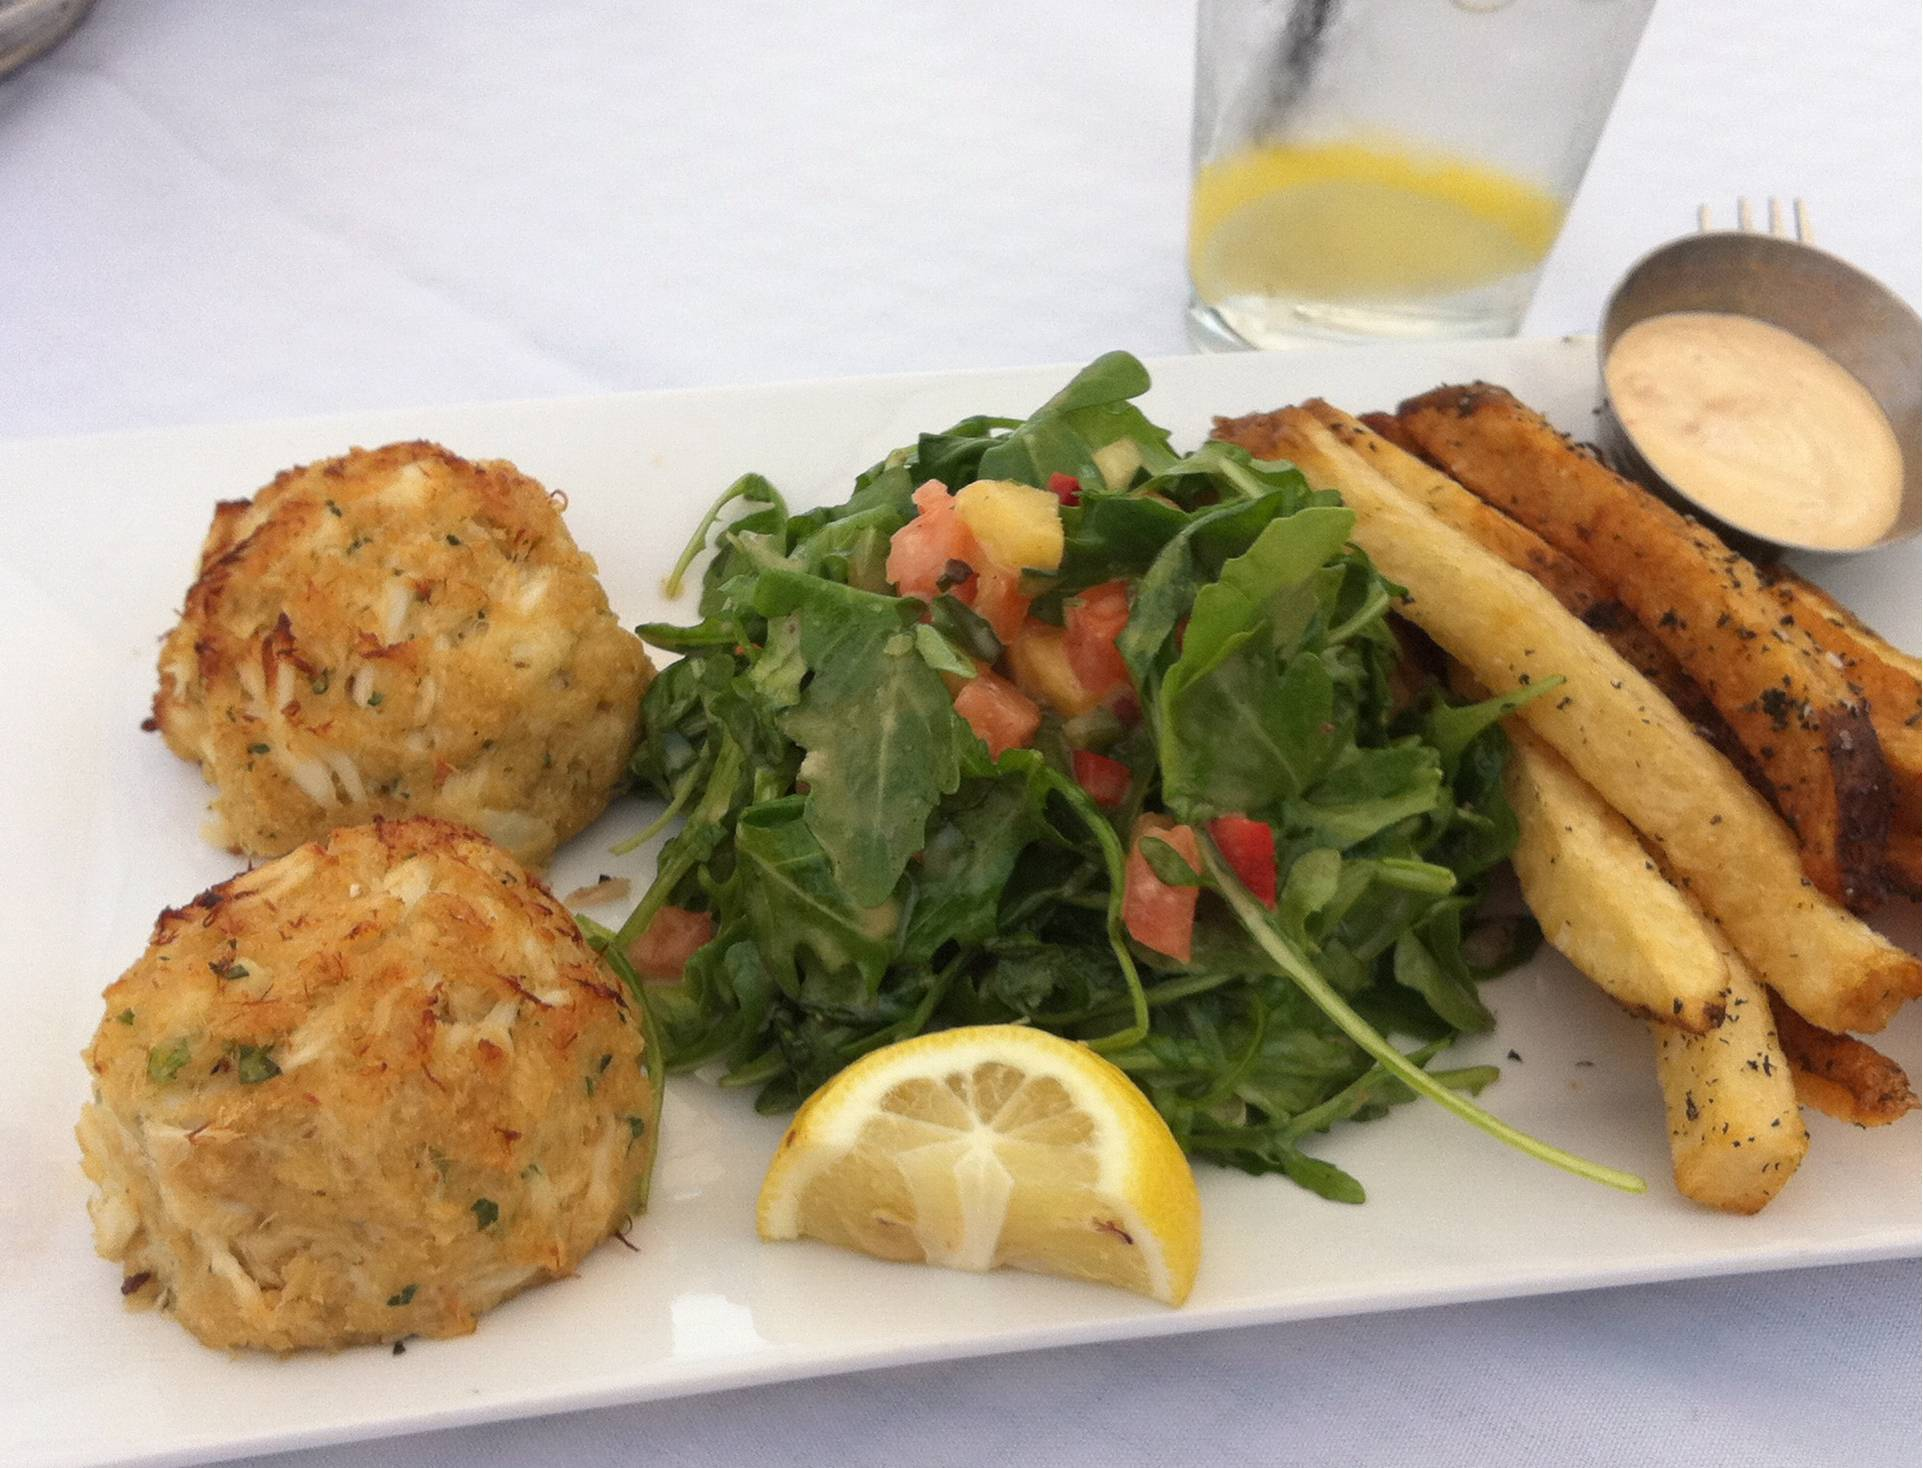 ... , how could you visit Baltimore without Crab Cakes for lunch